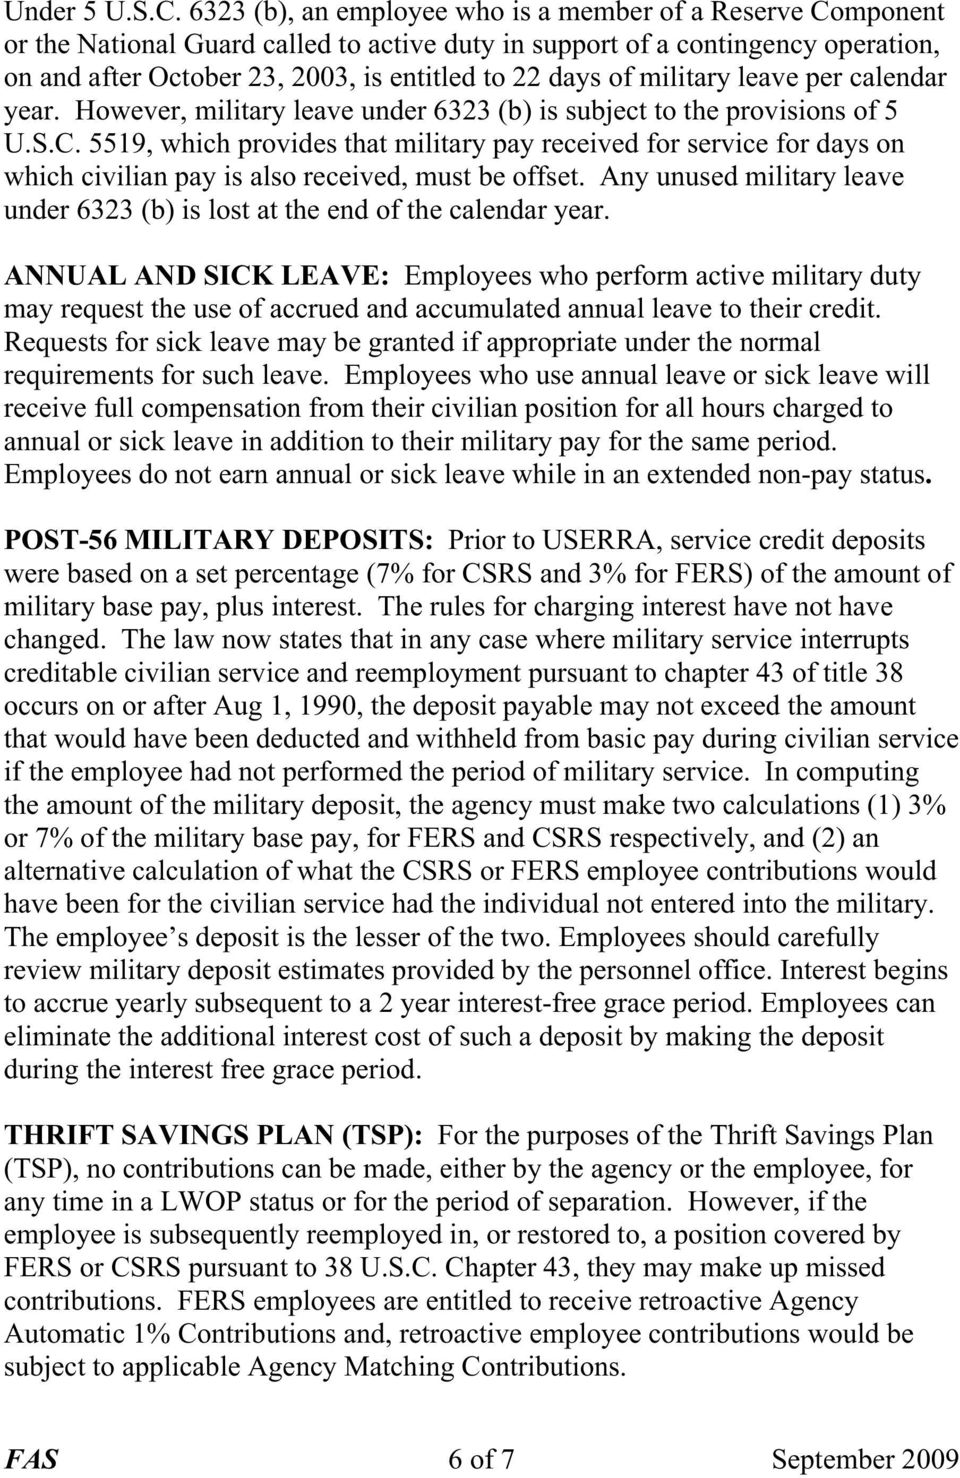 of military leave per calendar year. However, military leave under 6323 (b) is subject to the provisions of 5 U.S.C.